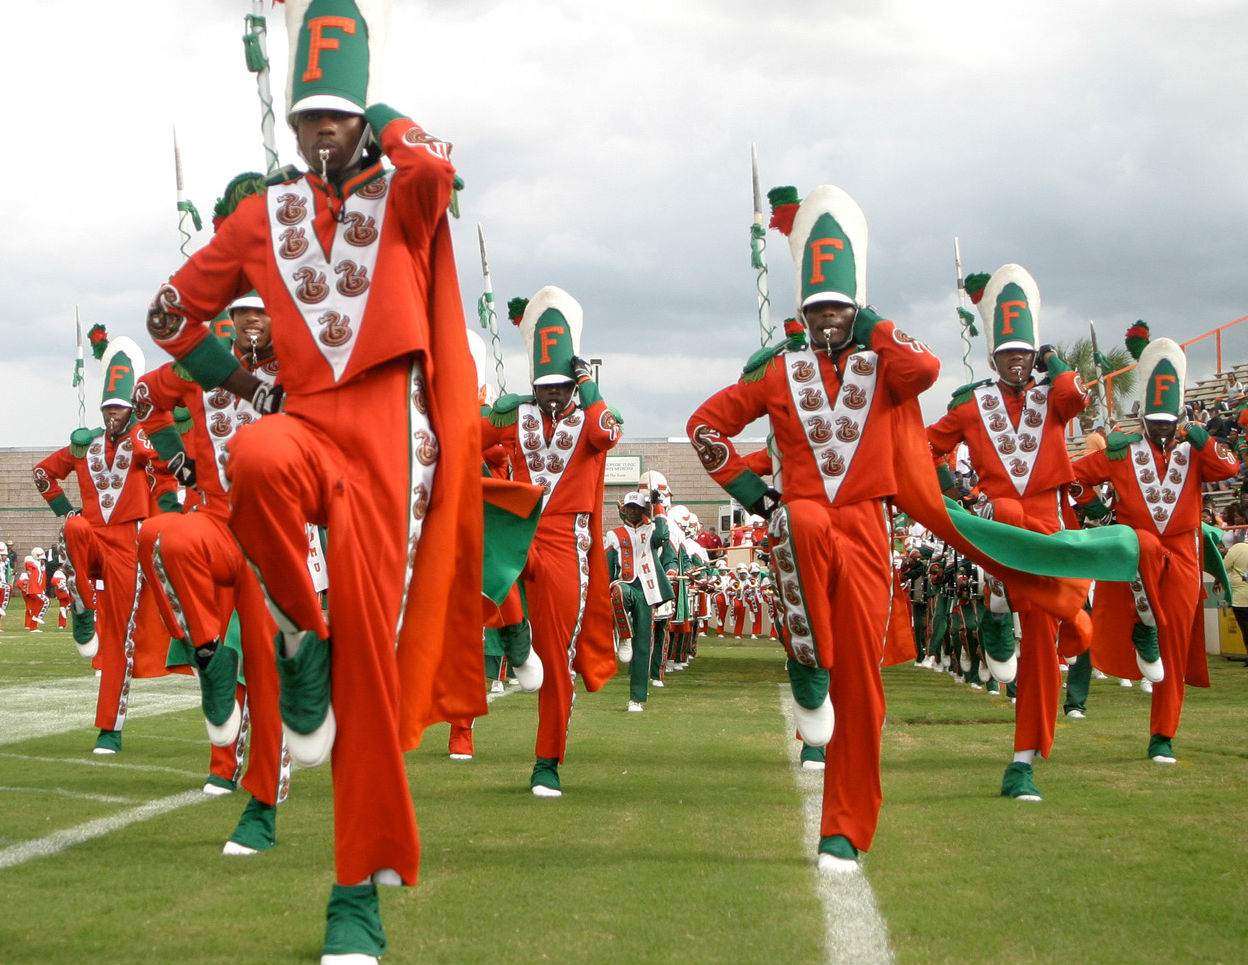 FAMU Halftime to Replace Marching Band With Musical Artists